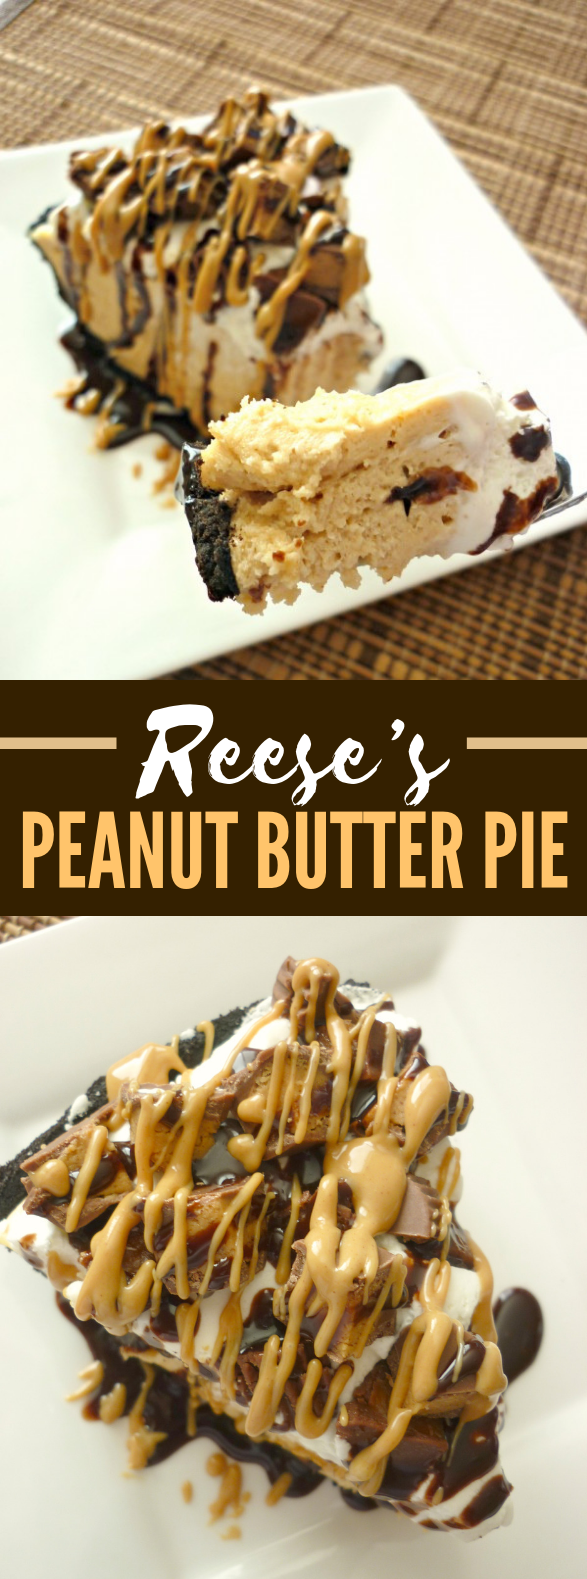 Reese's Peanut Butter Pie #desserts #chocolate